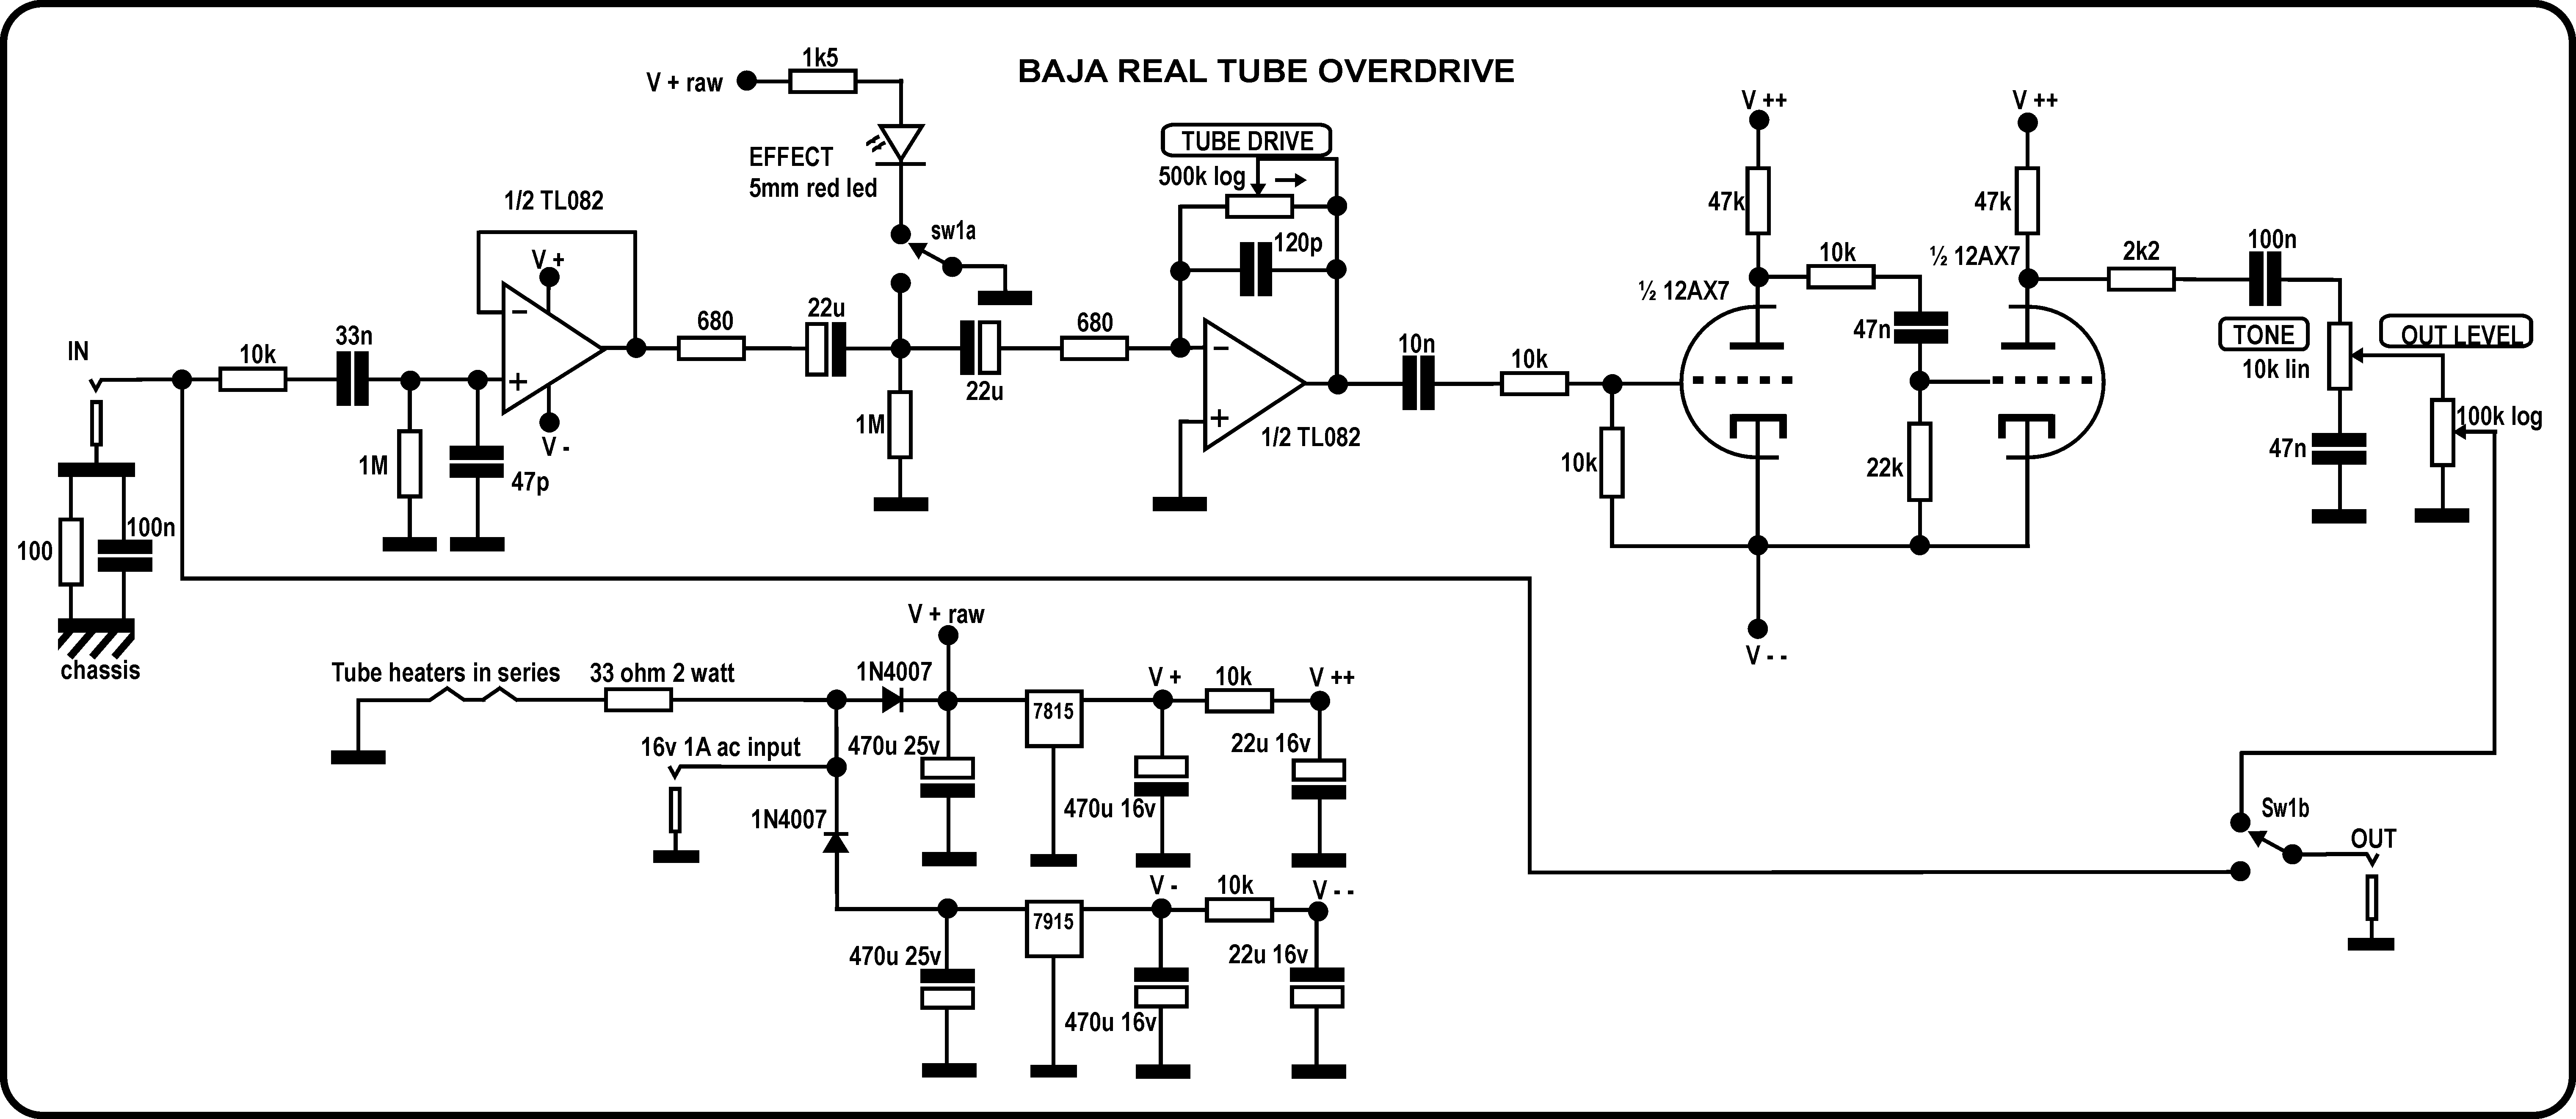 Baja%20Real%20Tube%20Overdrive%20Schematic.png